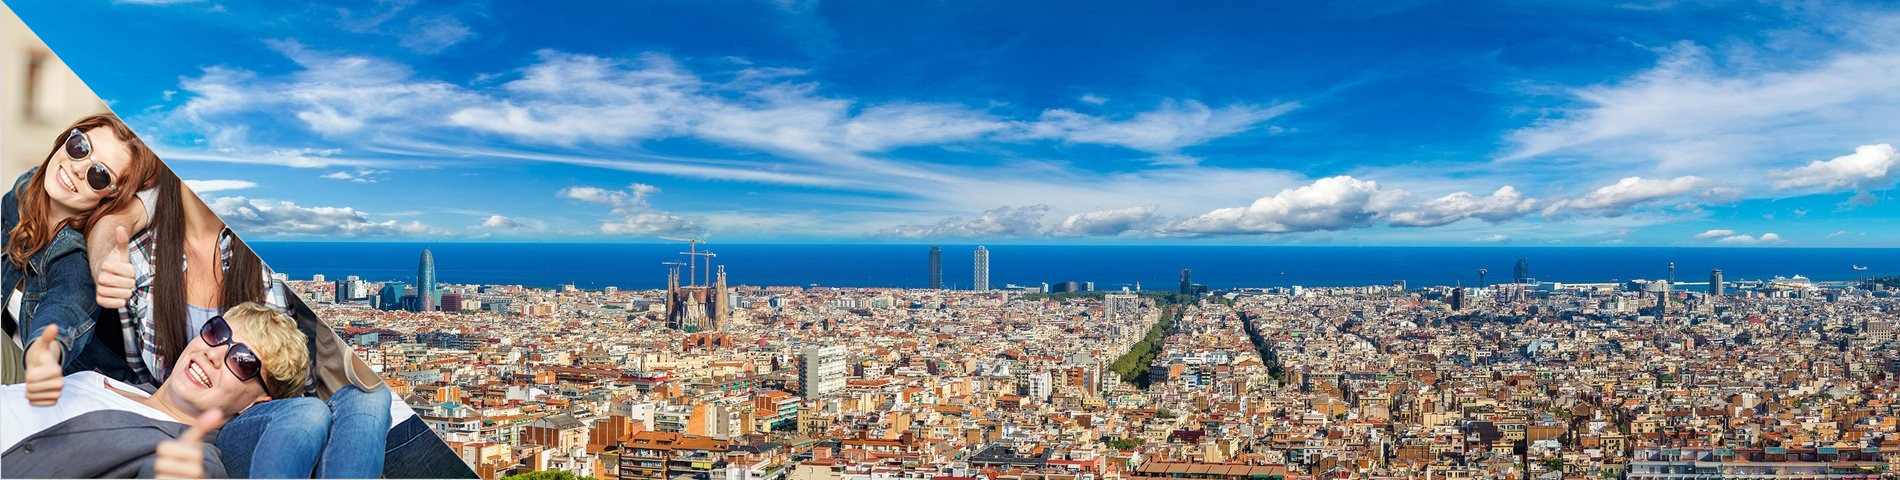 Barcelone - Voyages scolaires / Groupes